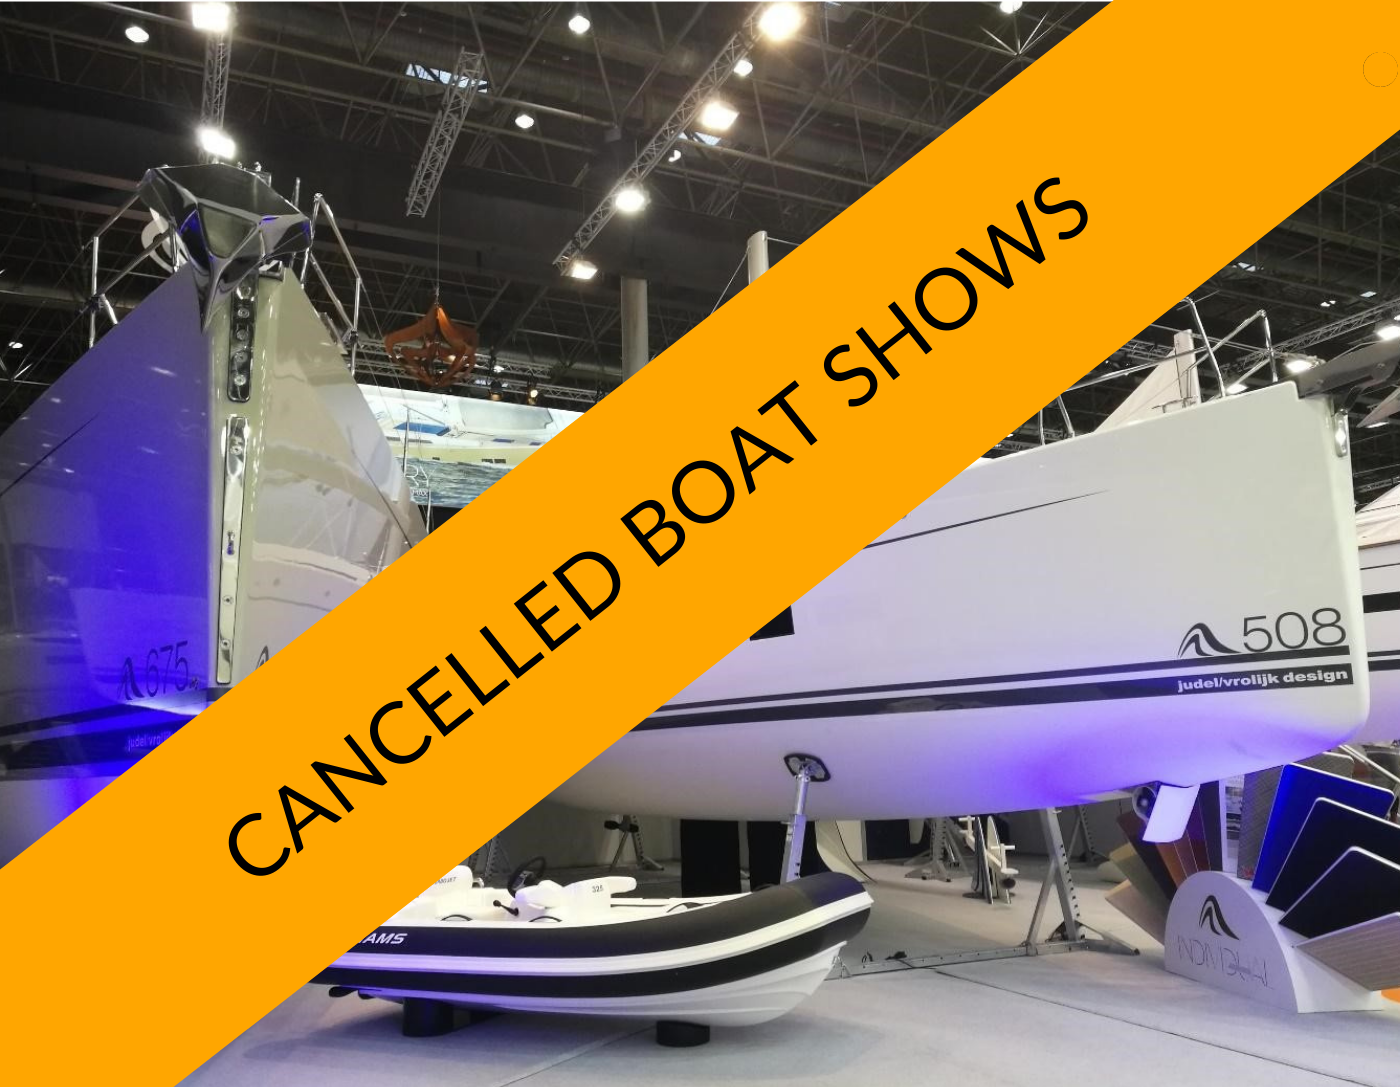 Cancelled boat shows blog